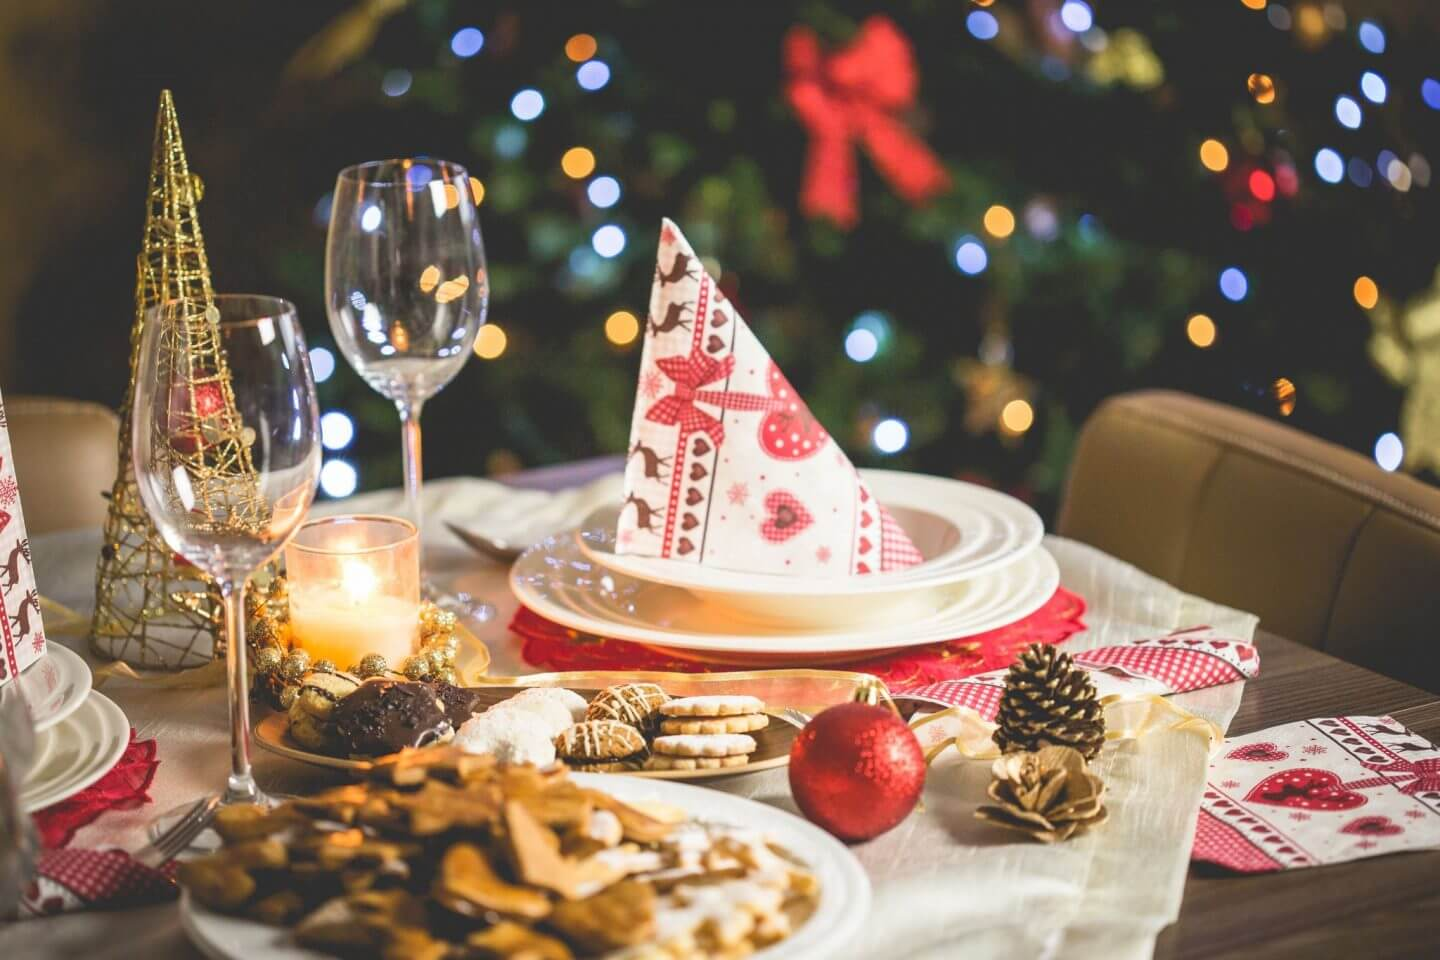 Red and gold themed table with white plates and Christmas napkins